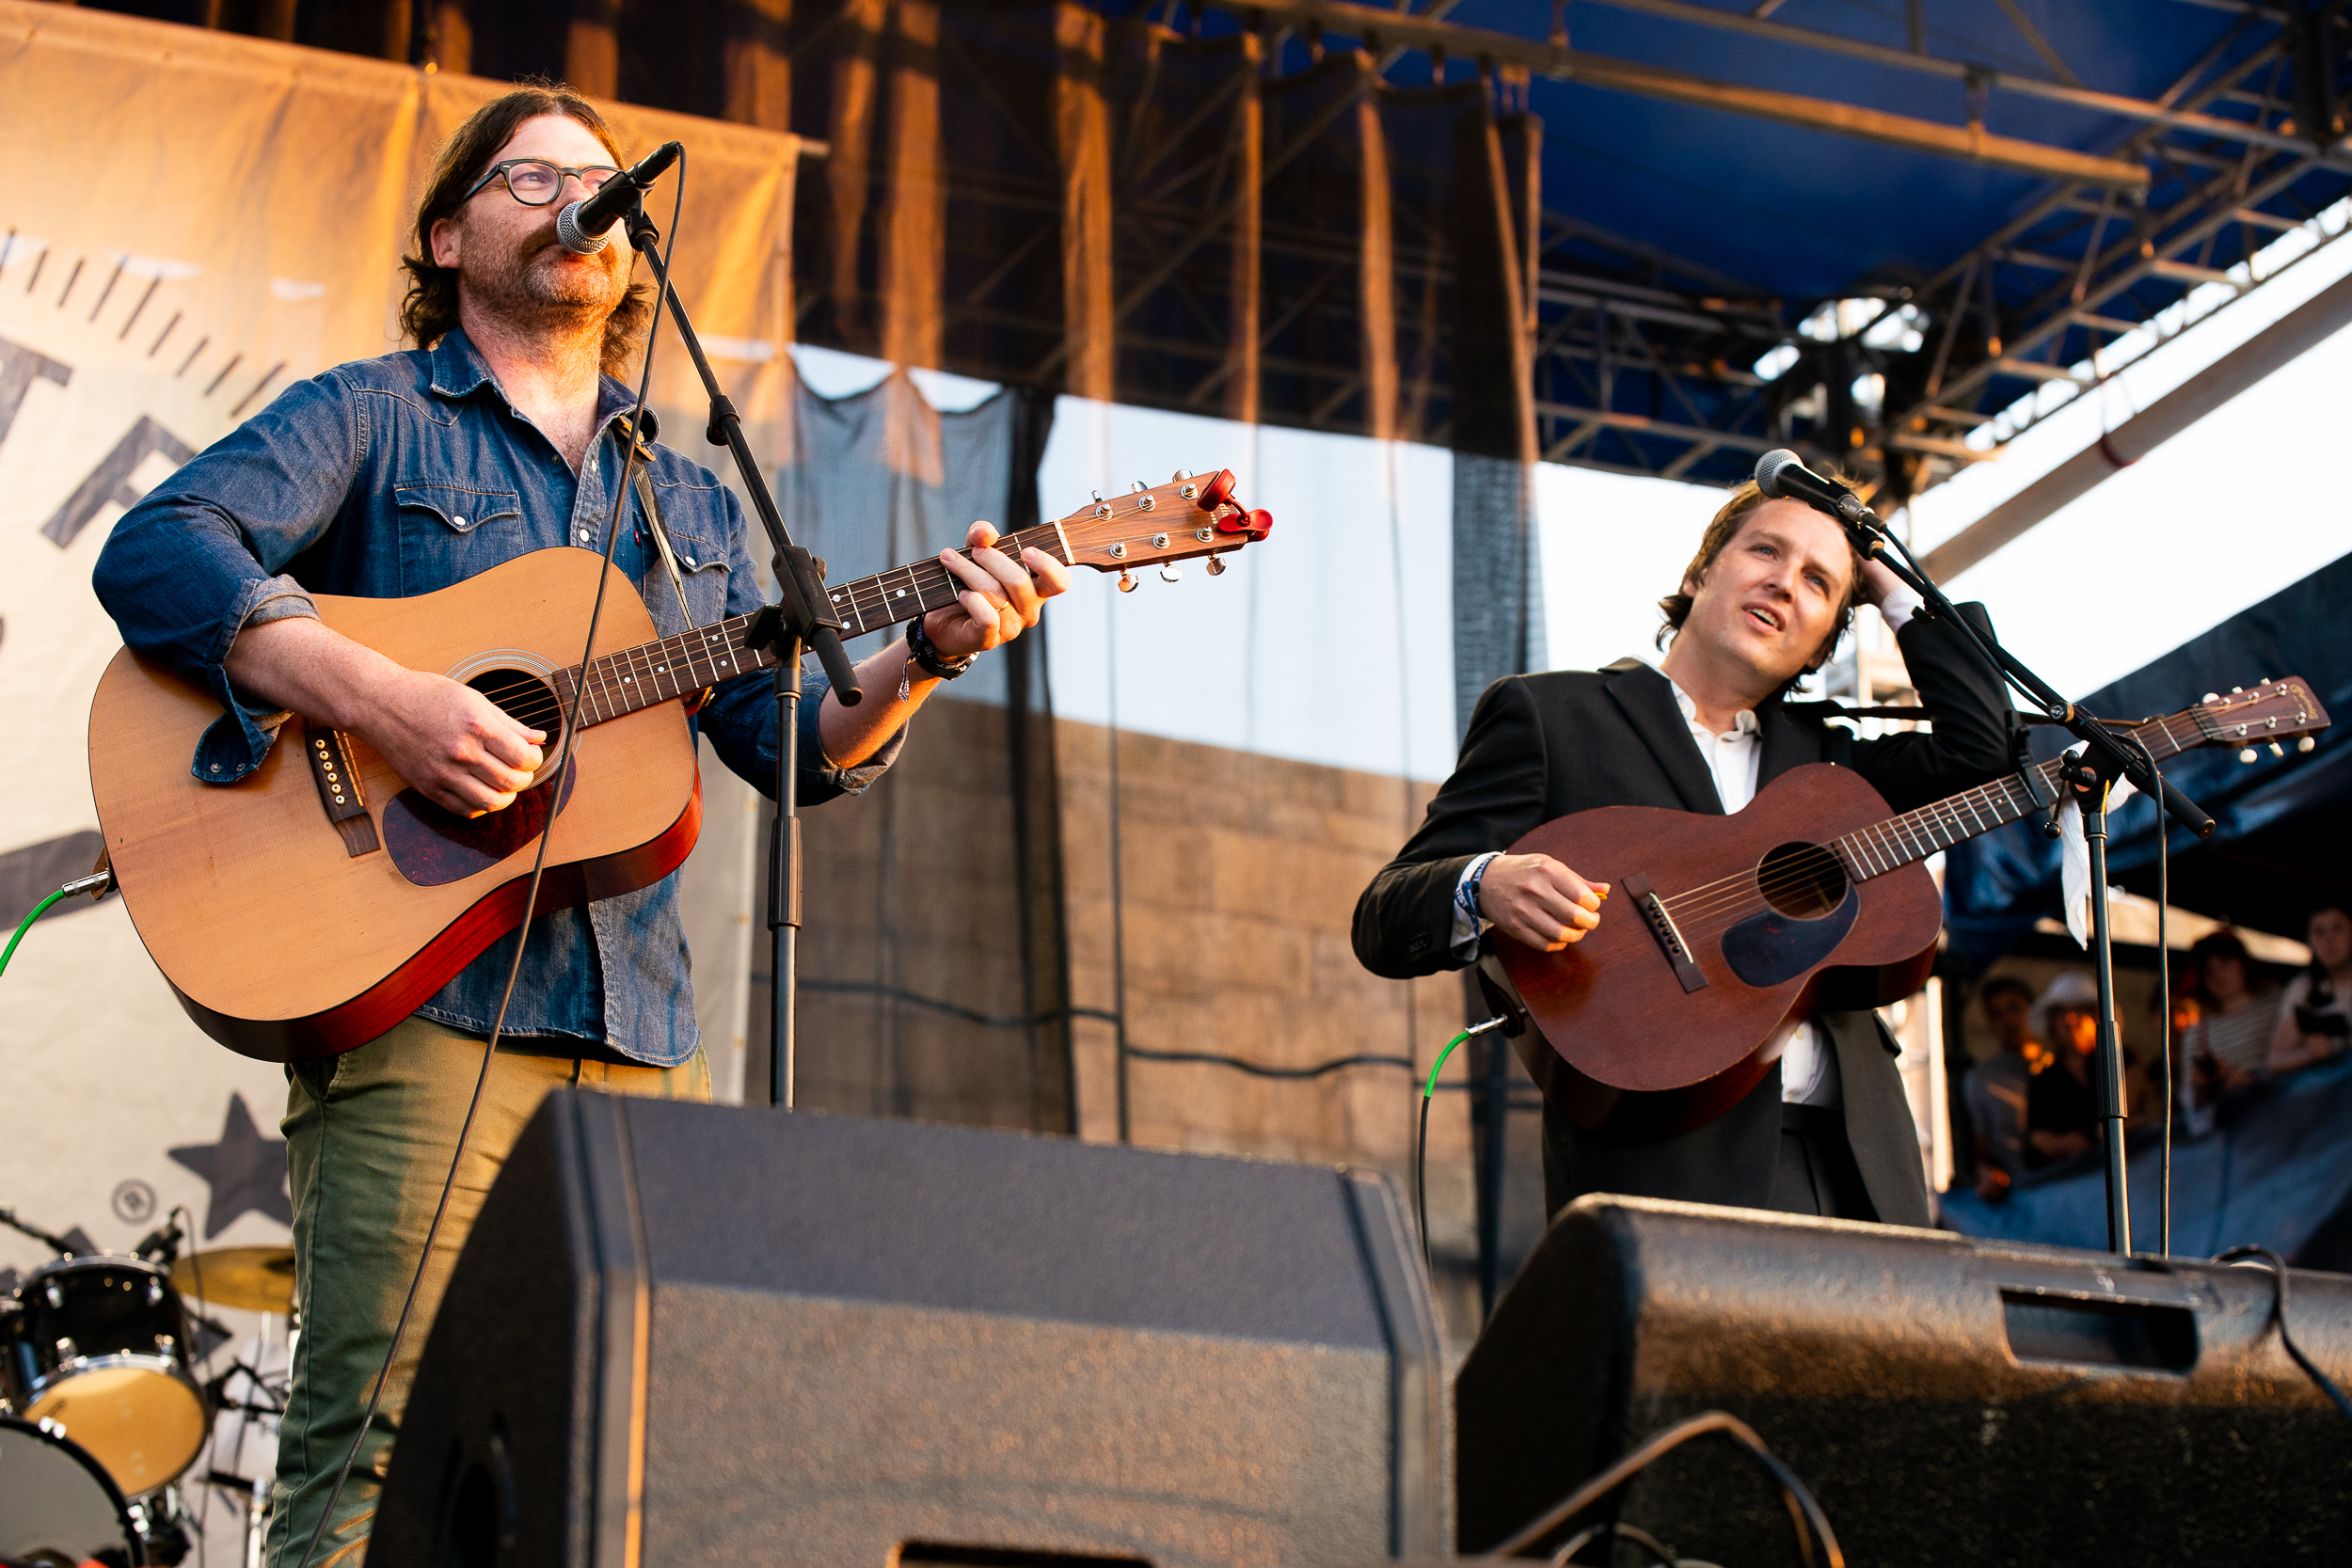 Colin Meloy and The Milk Carton Kids at Newport Folk Festival (Photo by Mauricio Castro)